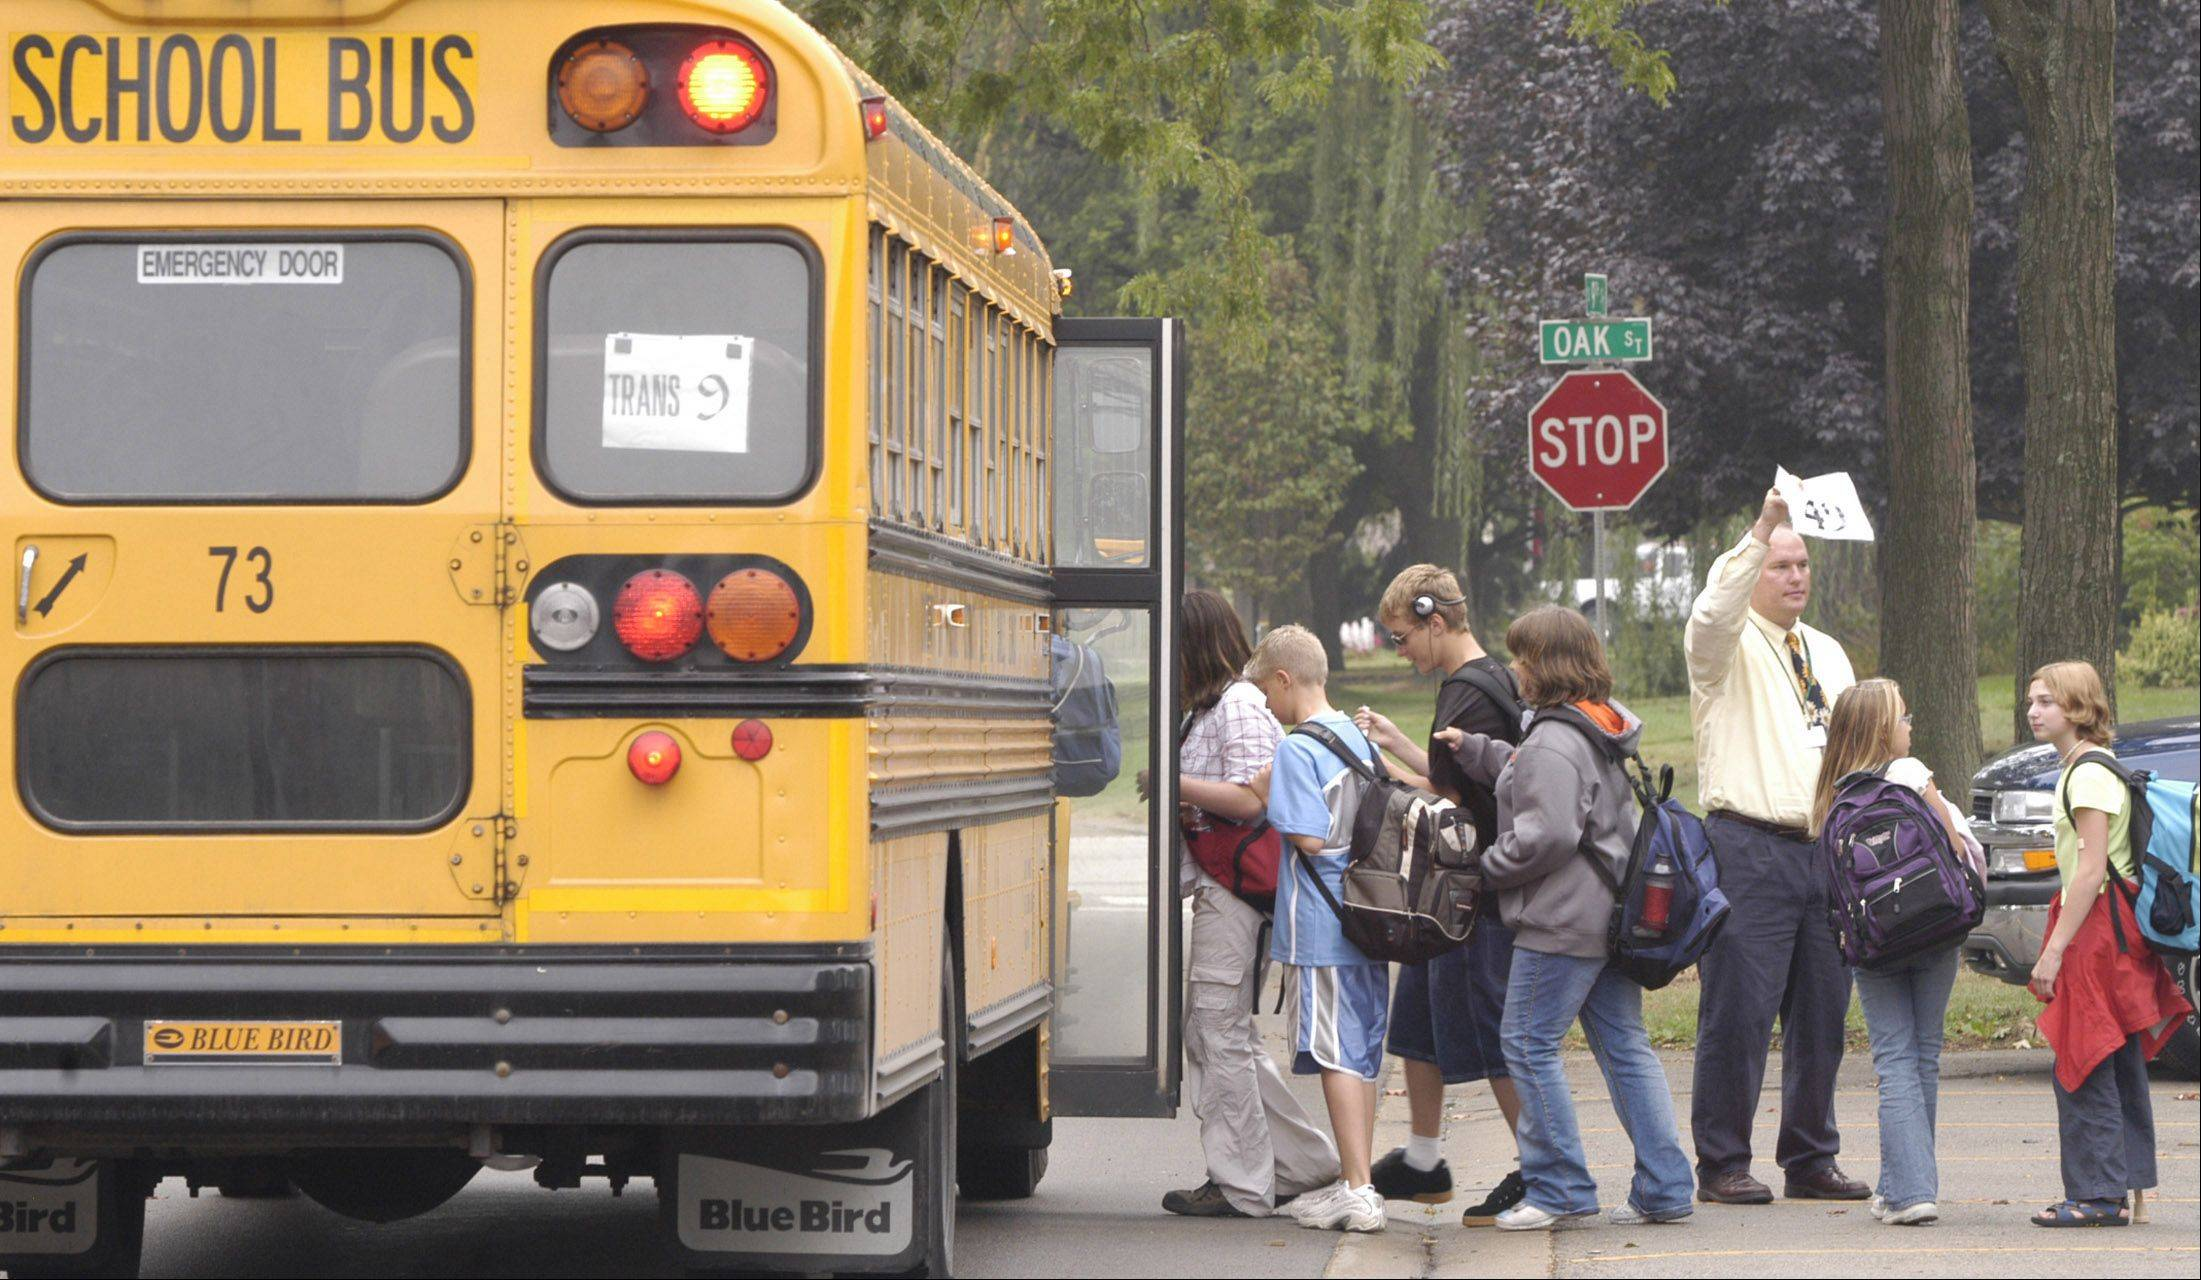 State lawmakers looking to spare schools' bus money